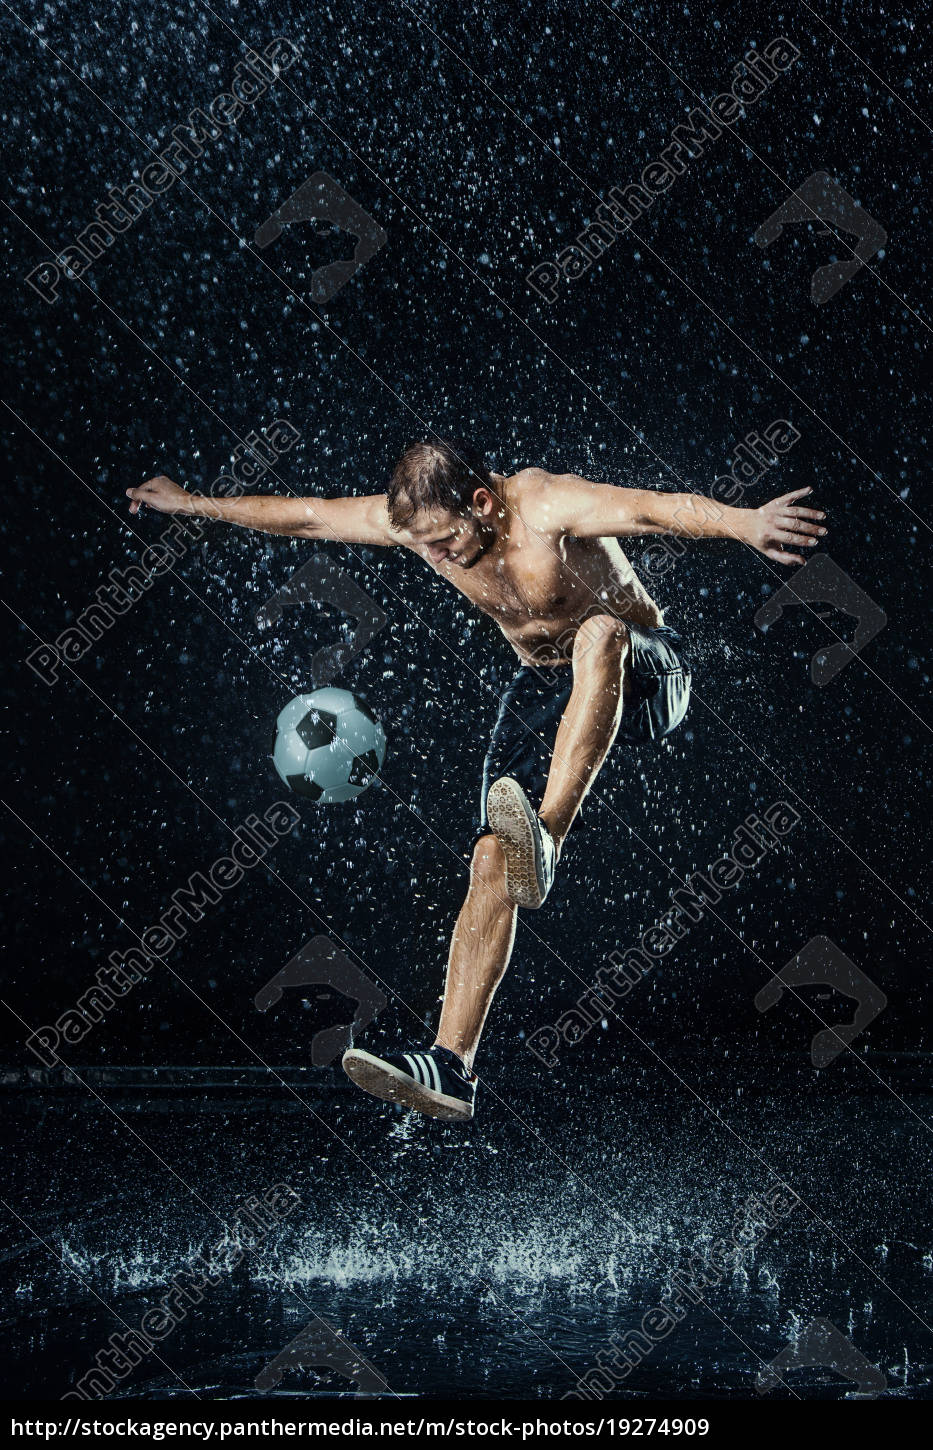 water, drops, around, football, player - 19274909